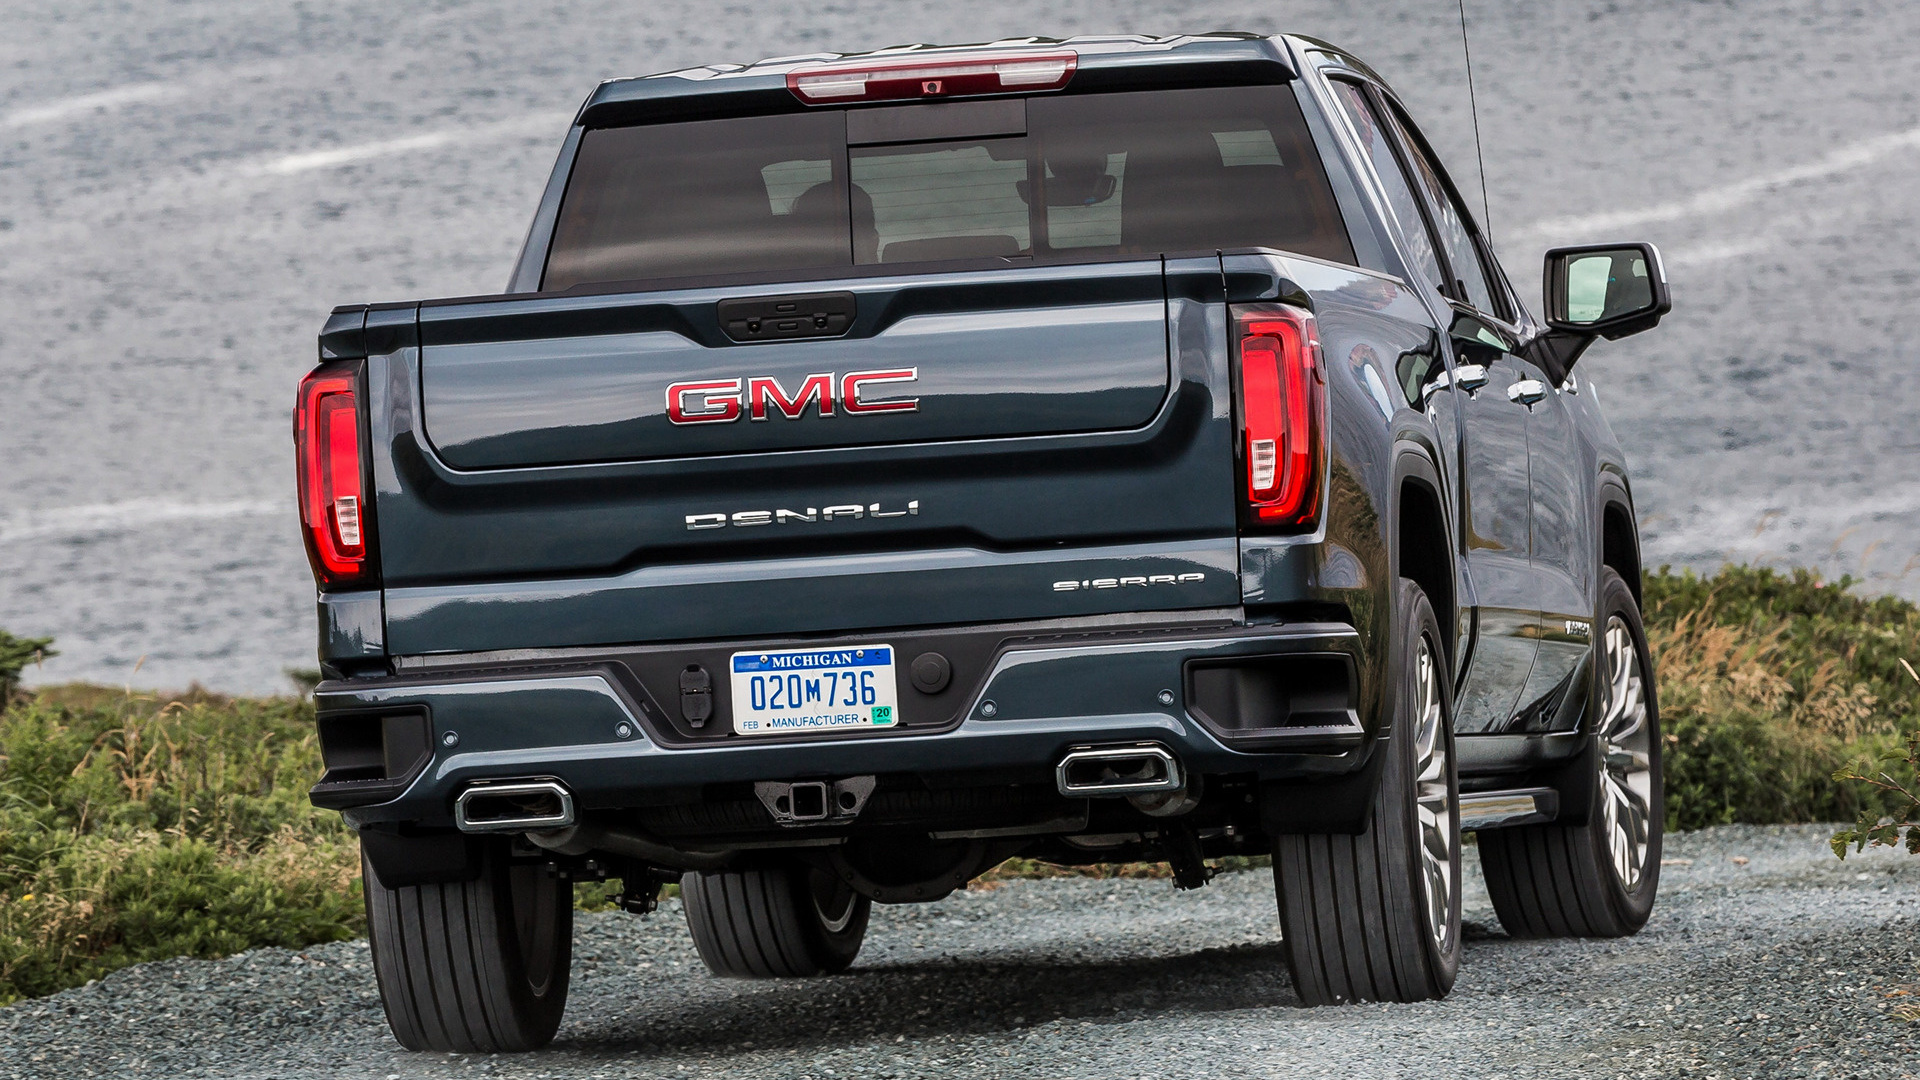 2017 Gmc 2500 >> 2019 GMC Sierra Denali Crew Cab - Wallpapers and HD Images | Car Pixel